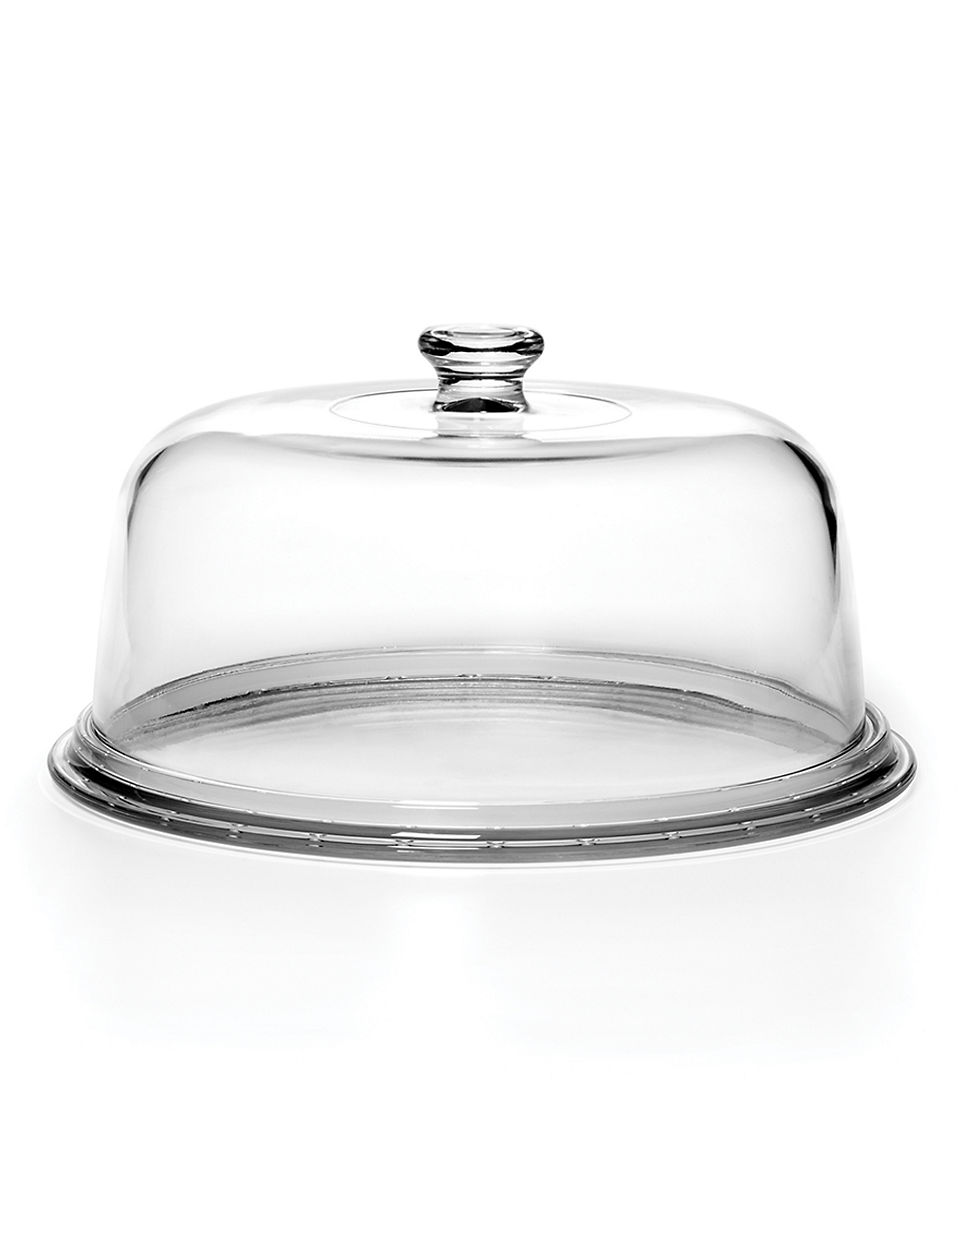 Napoli Cake Plate with Dome | Hudson\'s Bay